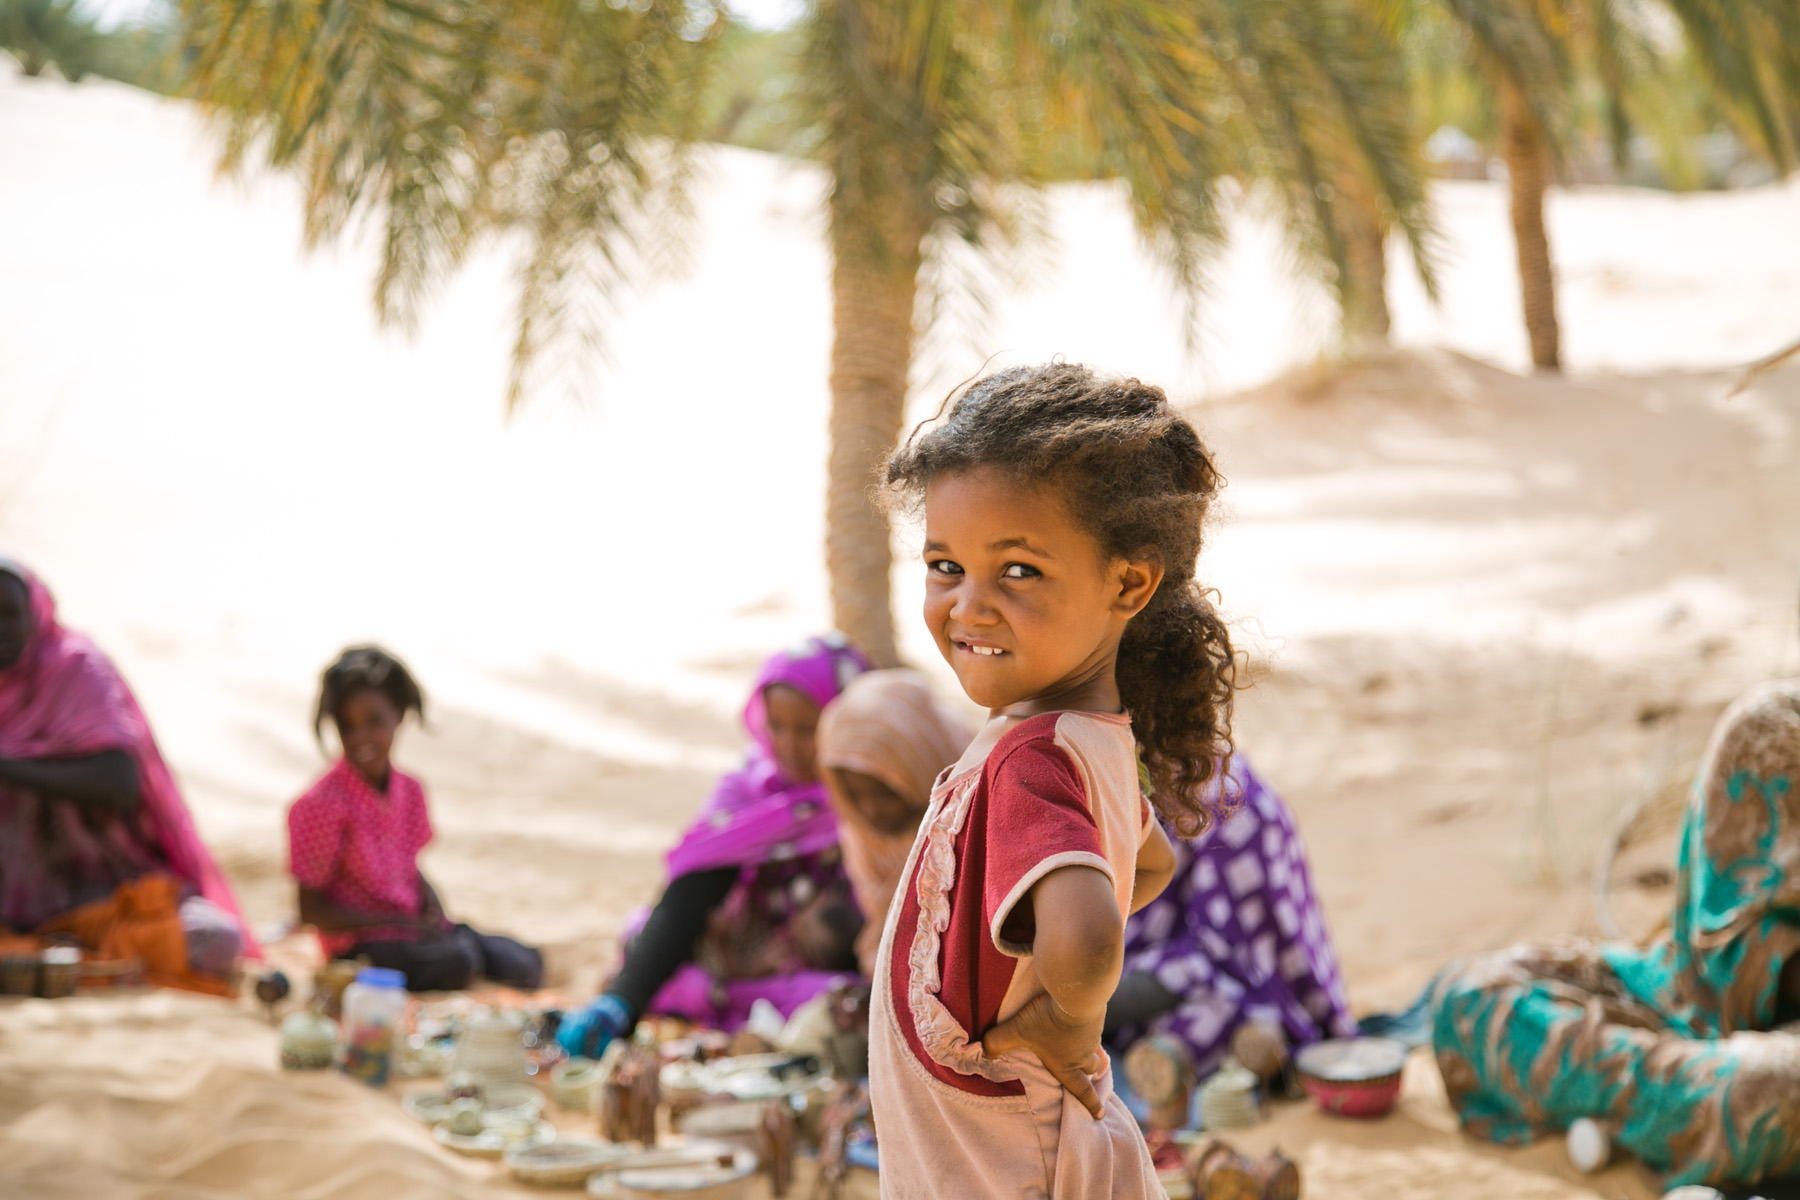 Join the launch event for a new child labour platform in Morocco!